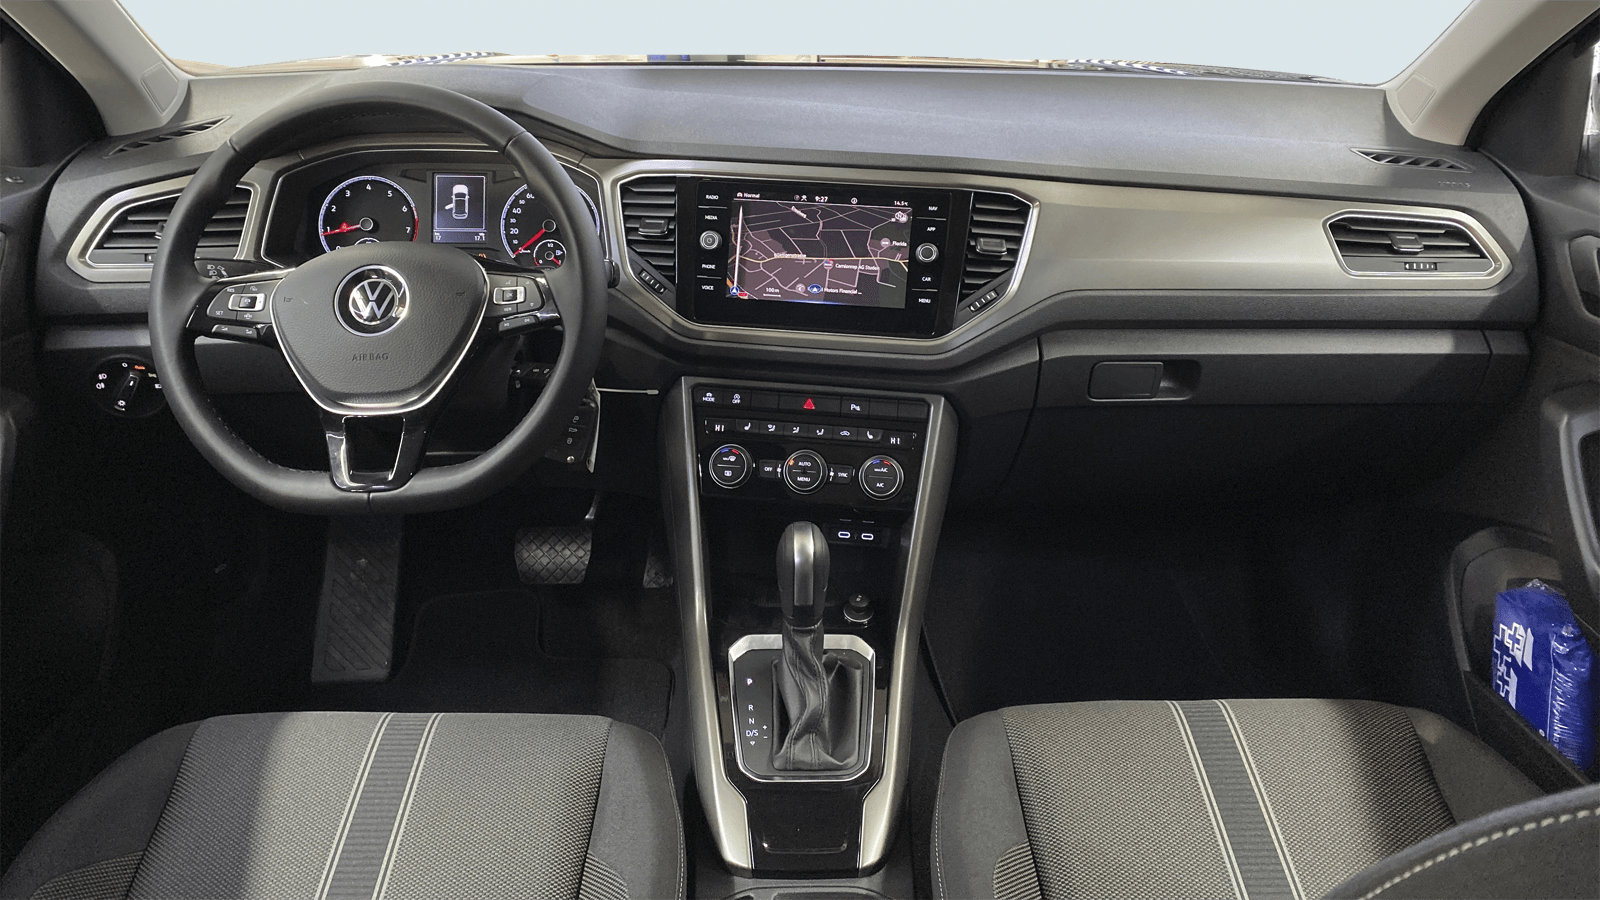 VW T-Roc Black interior - Clyde car subscription